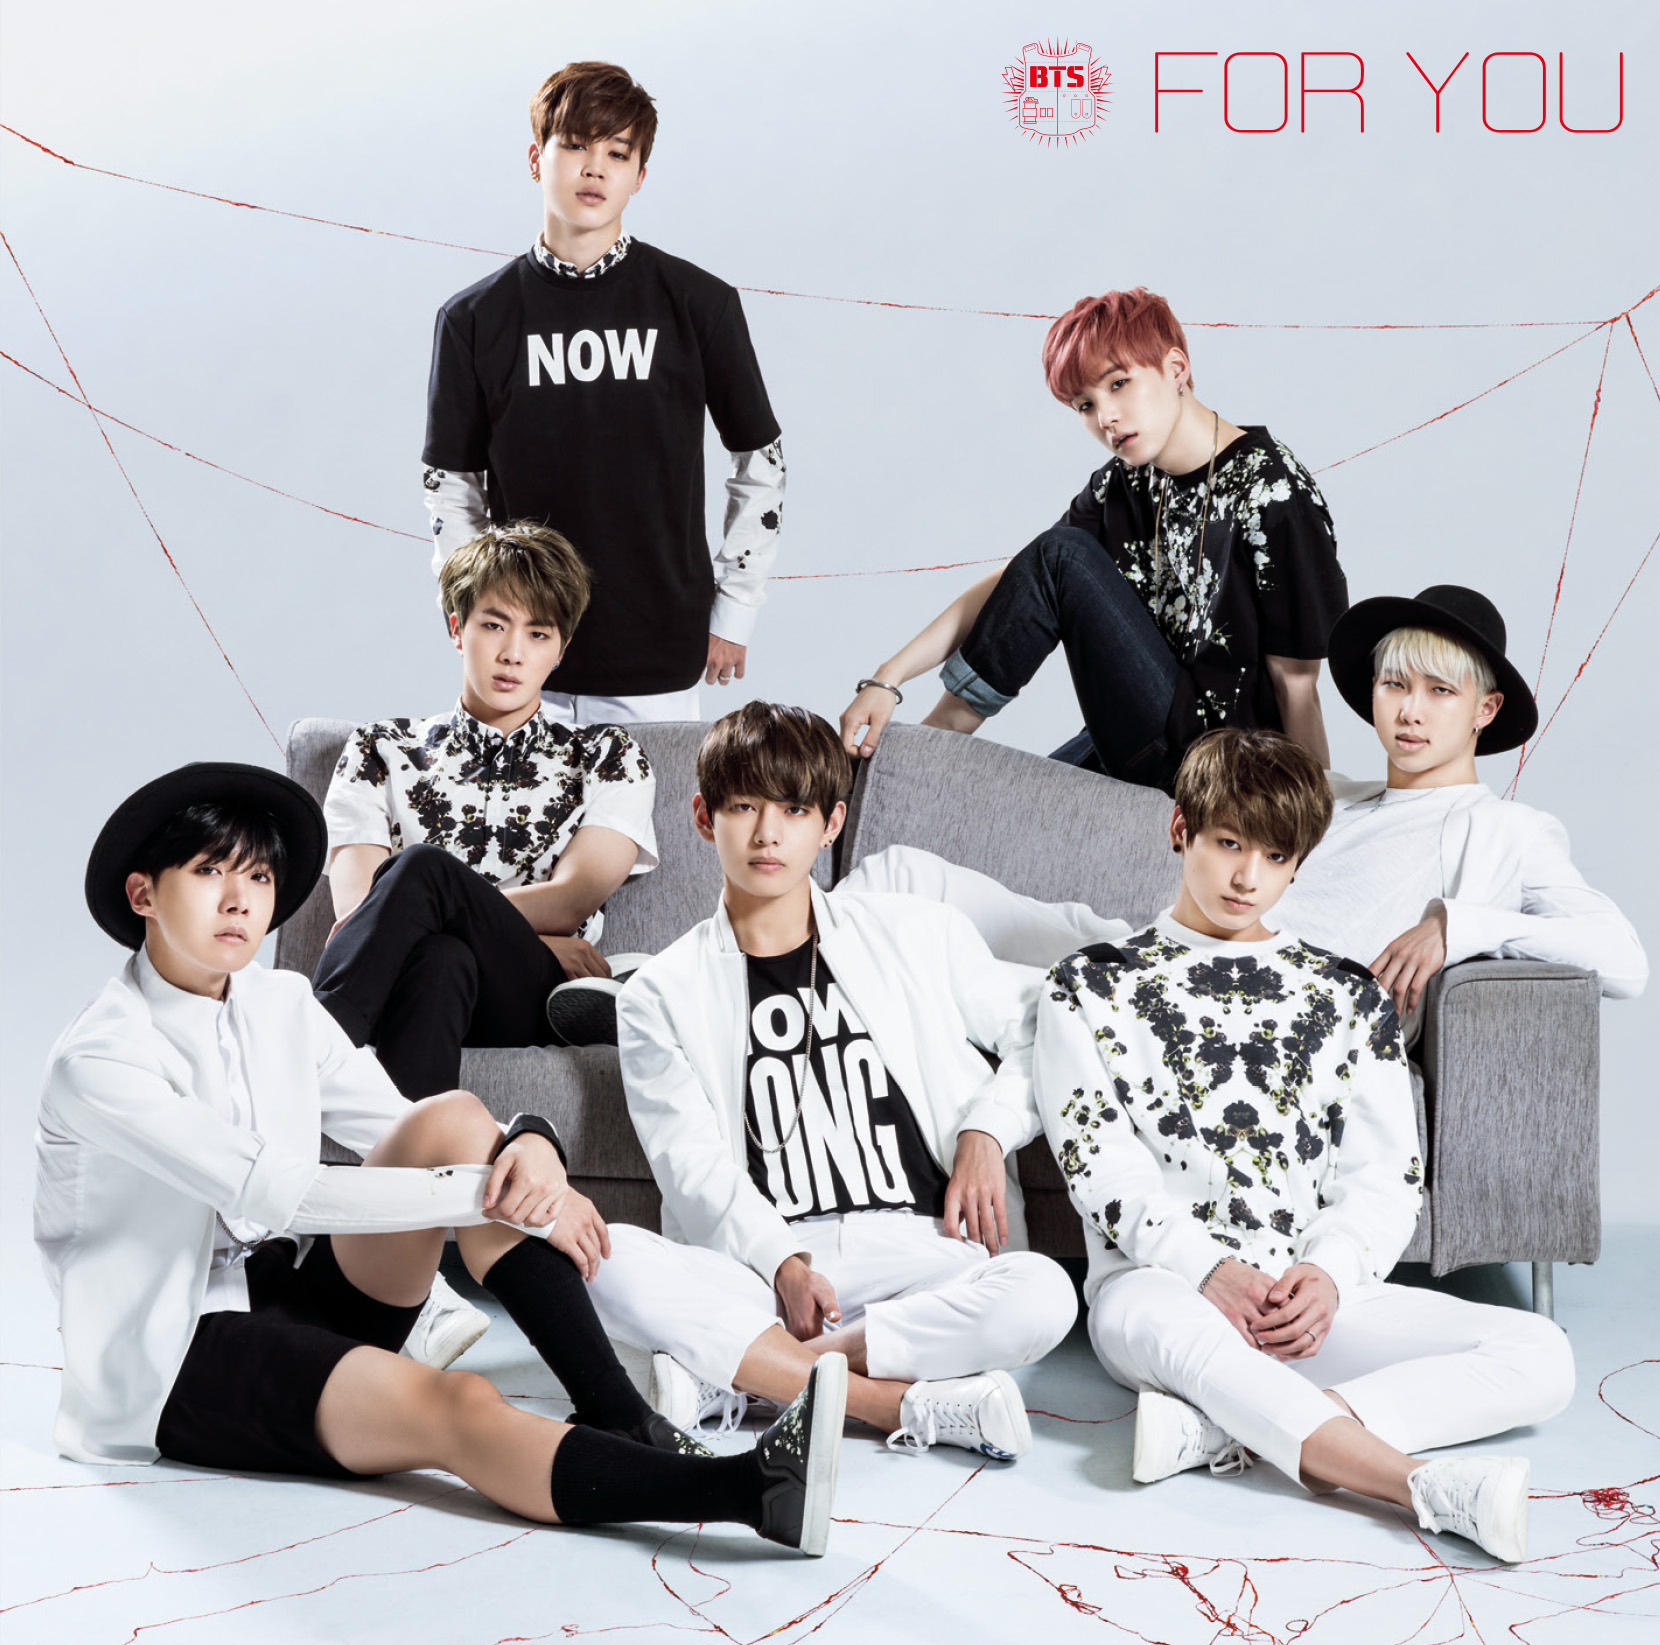 For You (BTS)